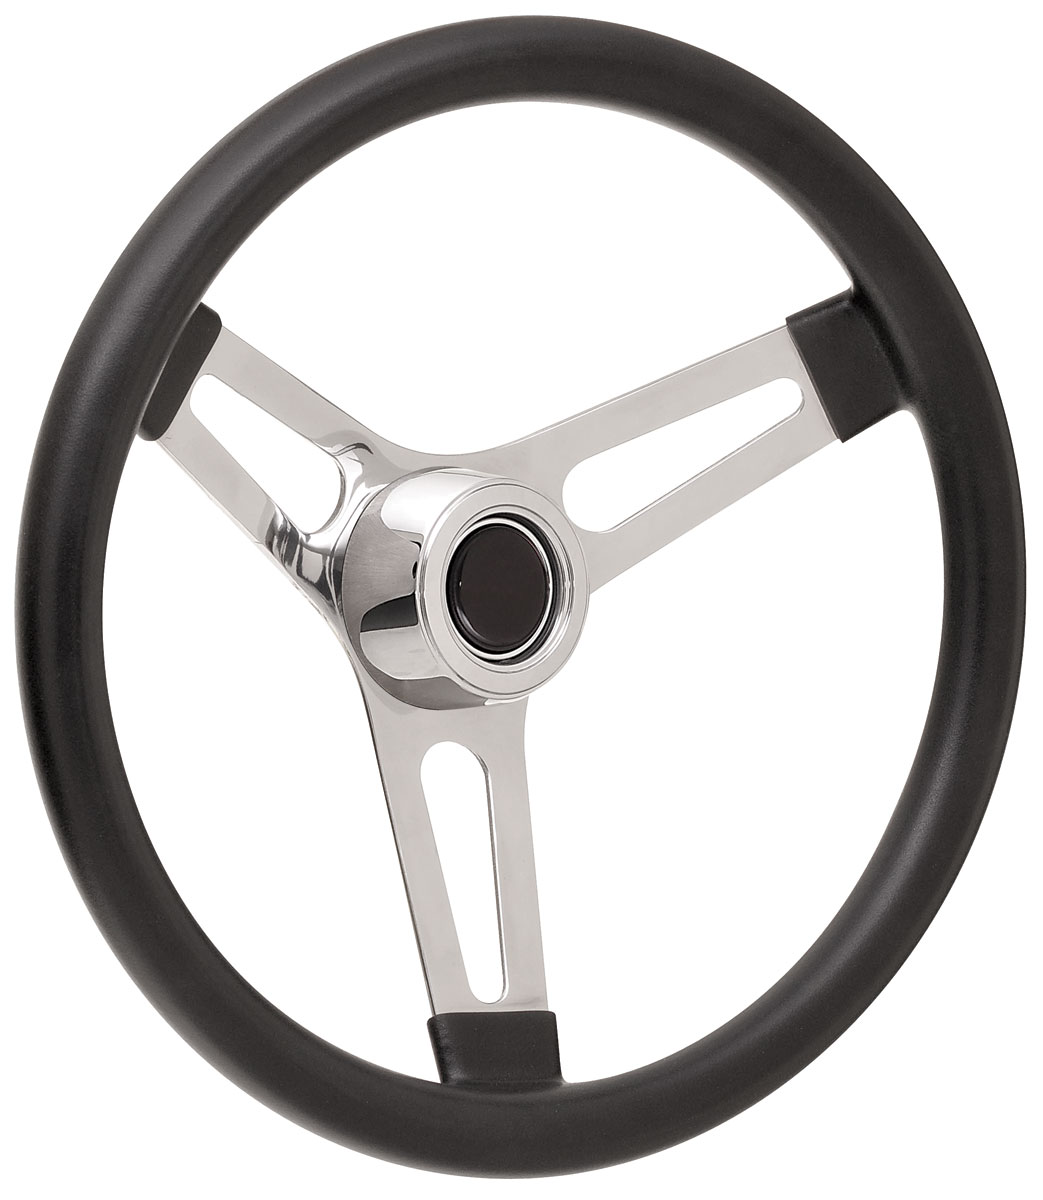 "Photo of Steering Wheel Kits, Symmetrical Style Hi-Rise Cap - Polished Early 3-1/4"" dish with black center"